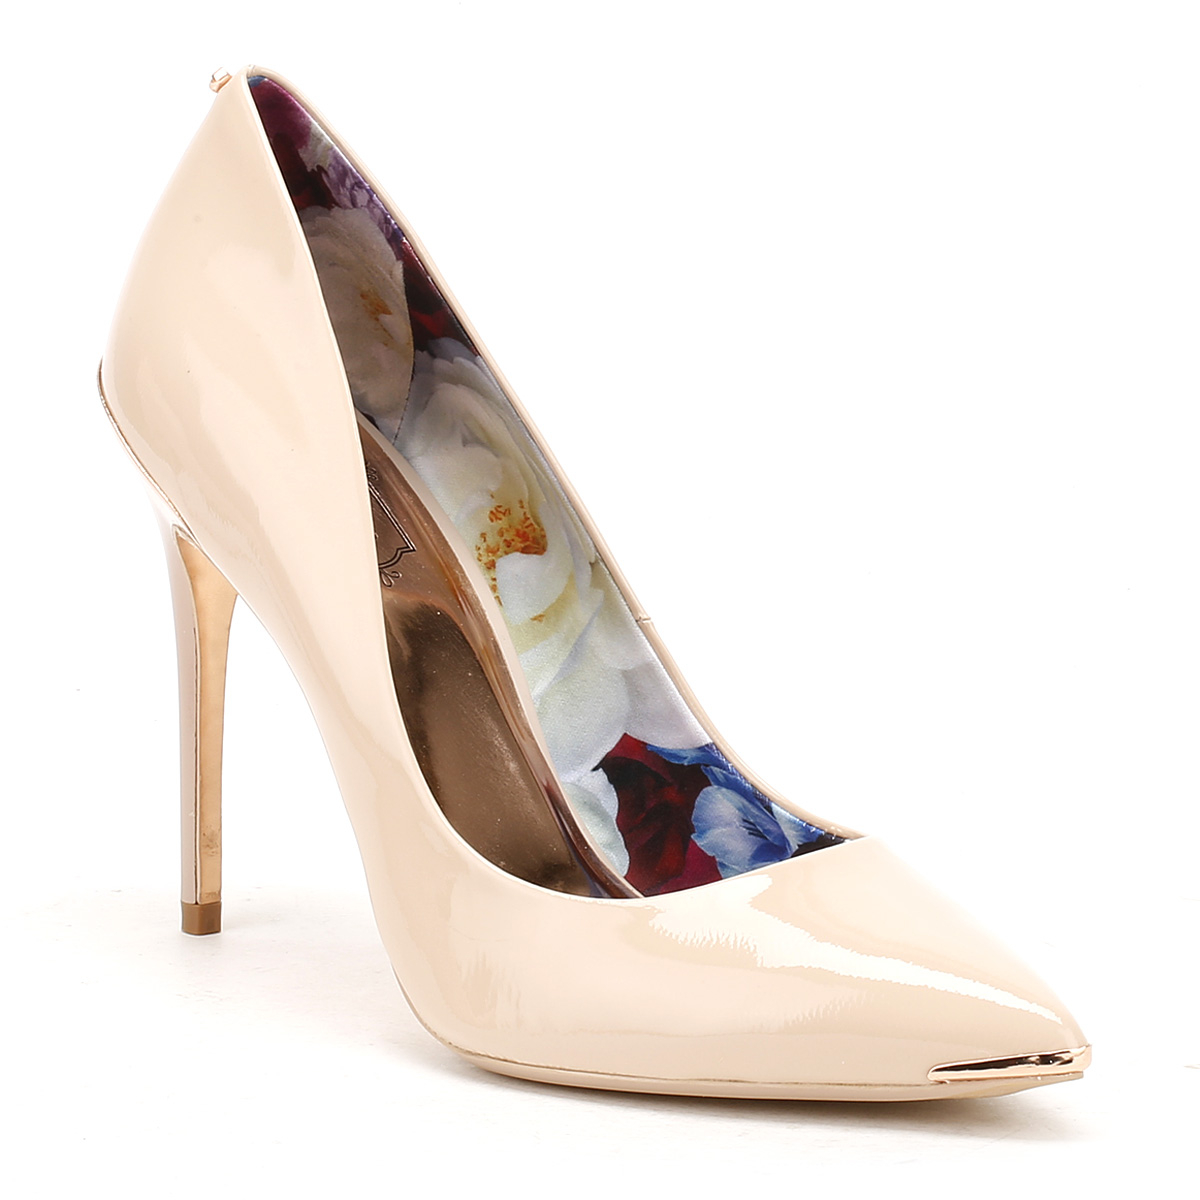 8aebad44863cc The Kaawa court shoes from Ted Baker come in a glossy soft patent leather  with a patterned floral print lining. Featuring a metallic toe tip and heel  cap ...